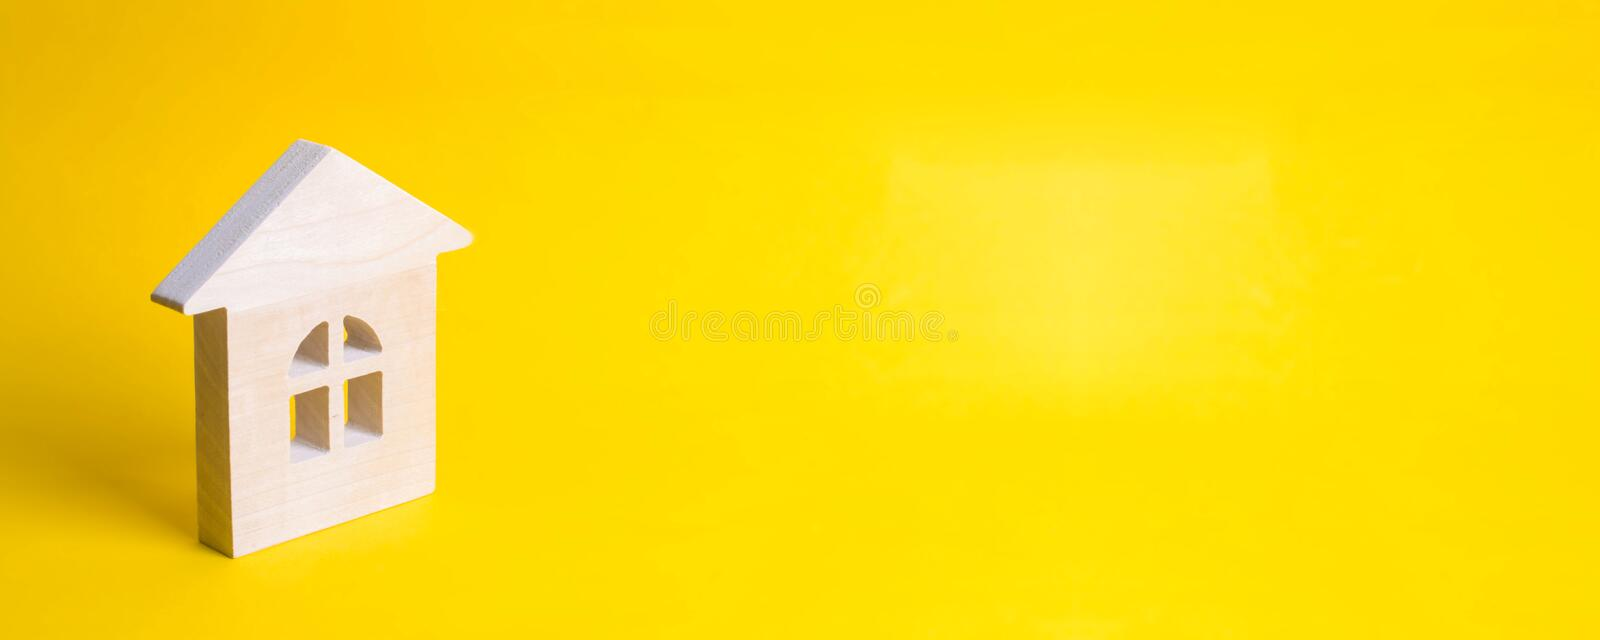 Wooden house on a yellow background. Concept of buying and selling housing, building a house. Rent of apartments. Realtors. stock image